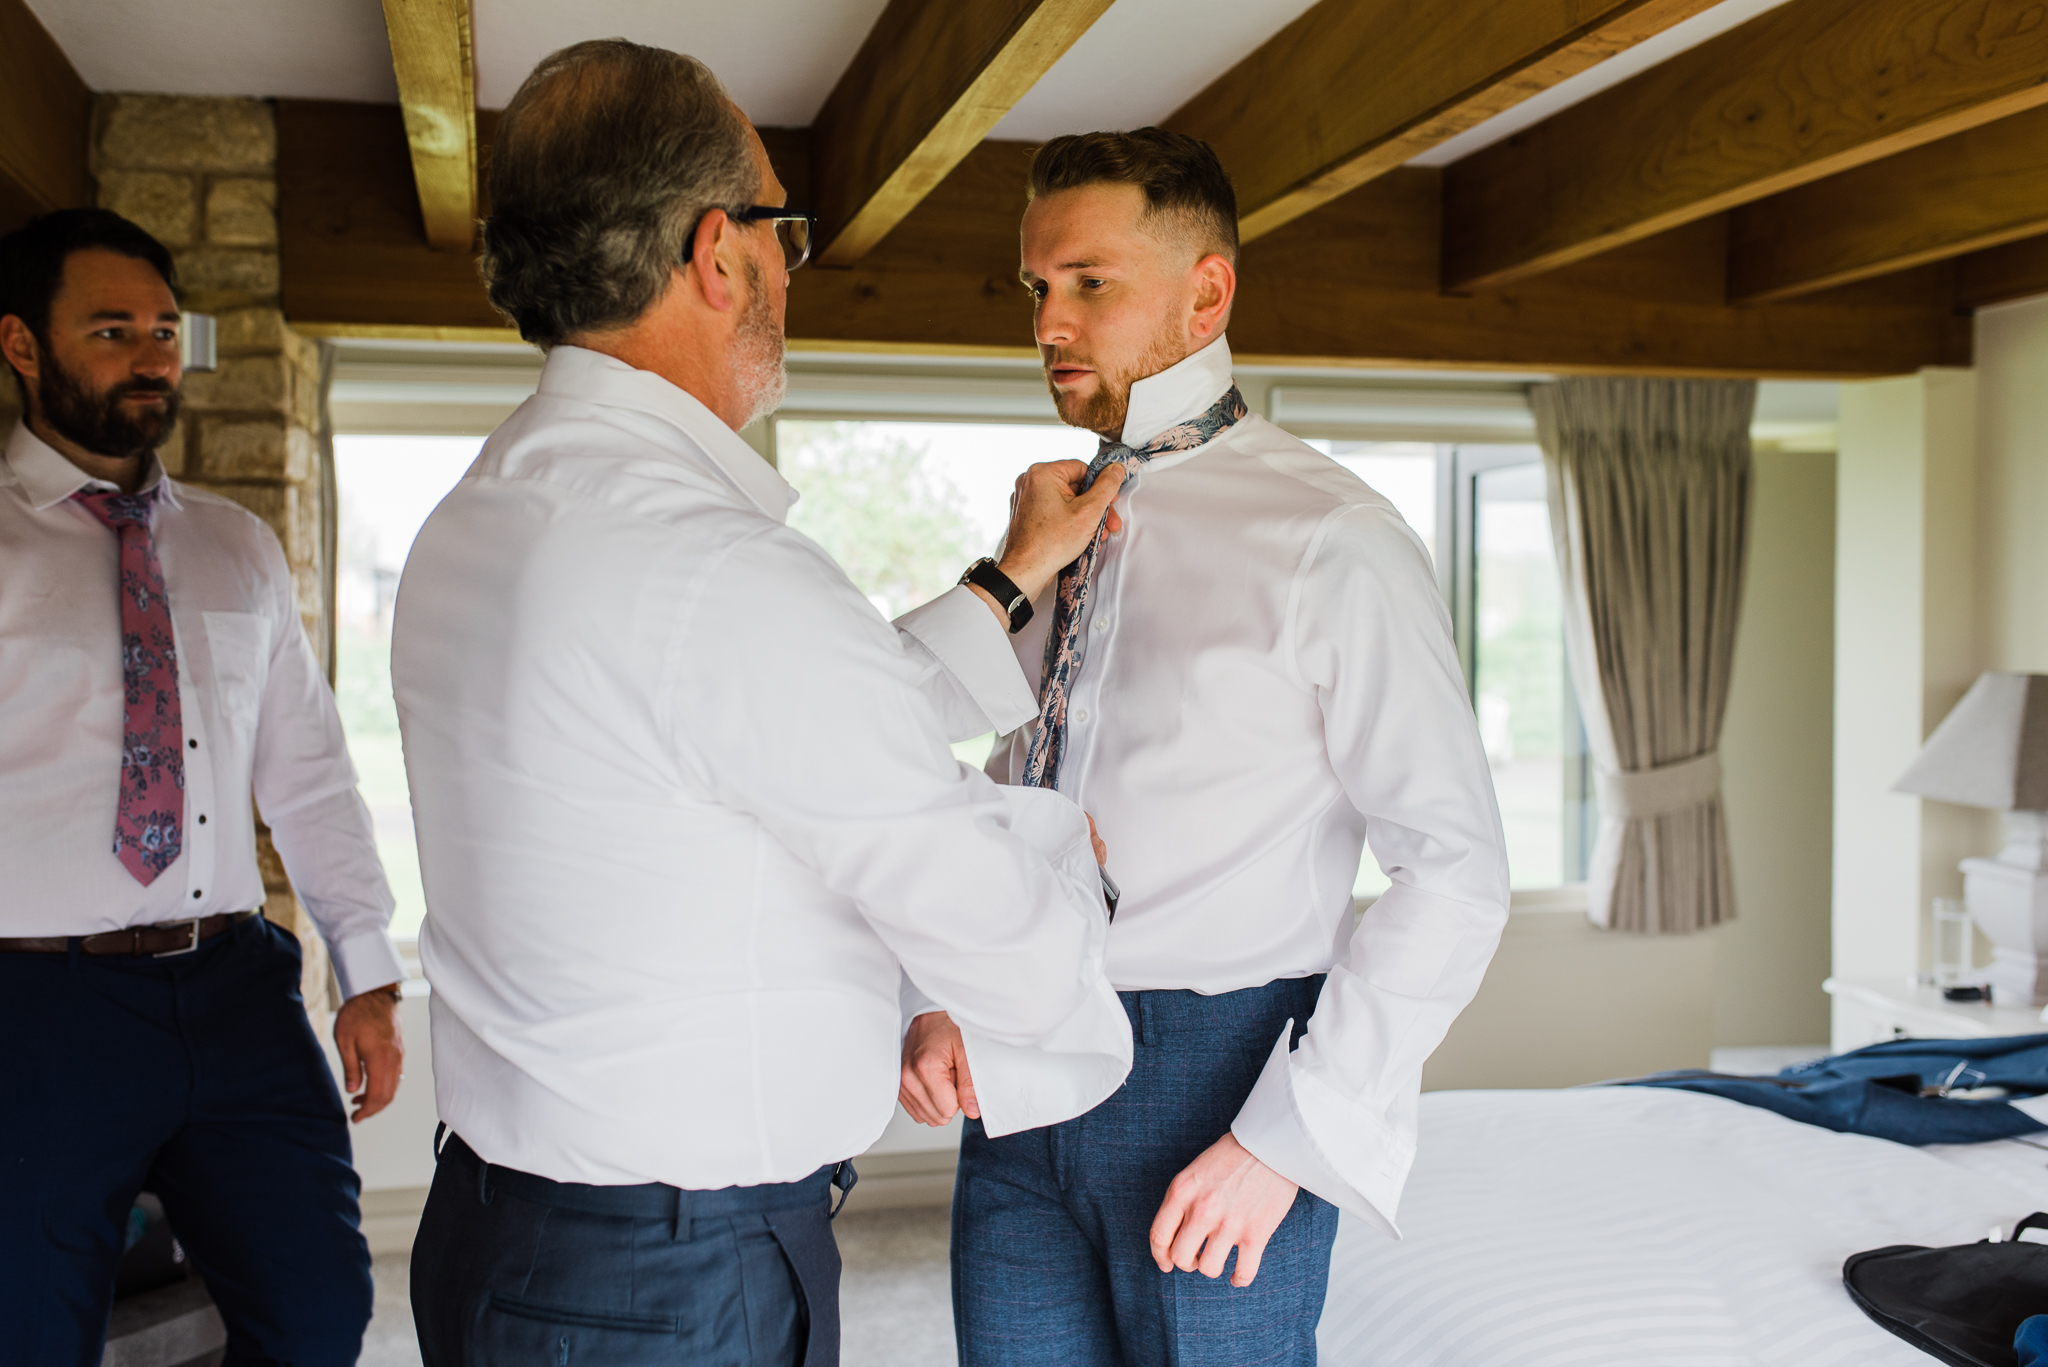 Groom putting tie on